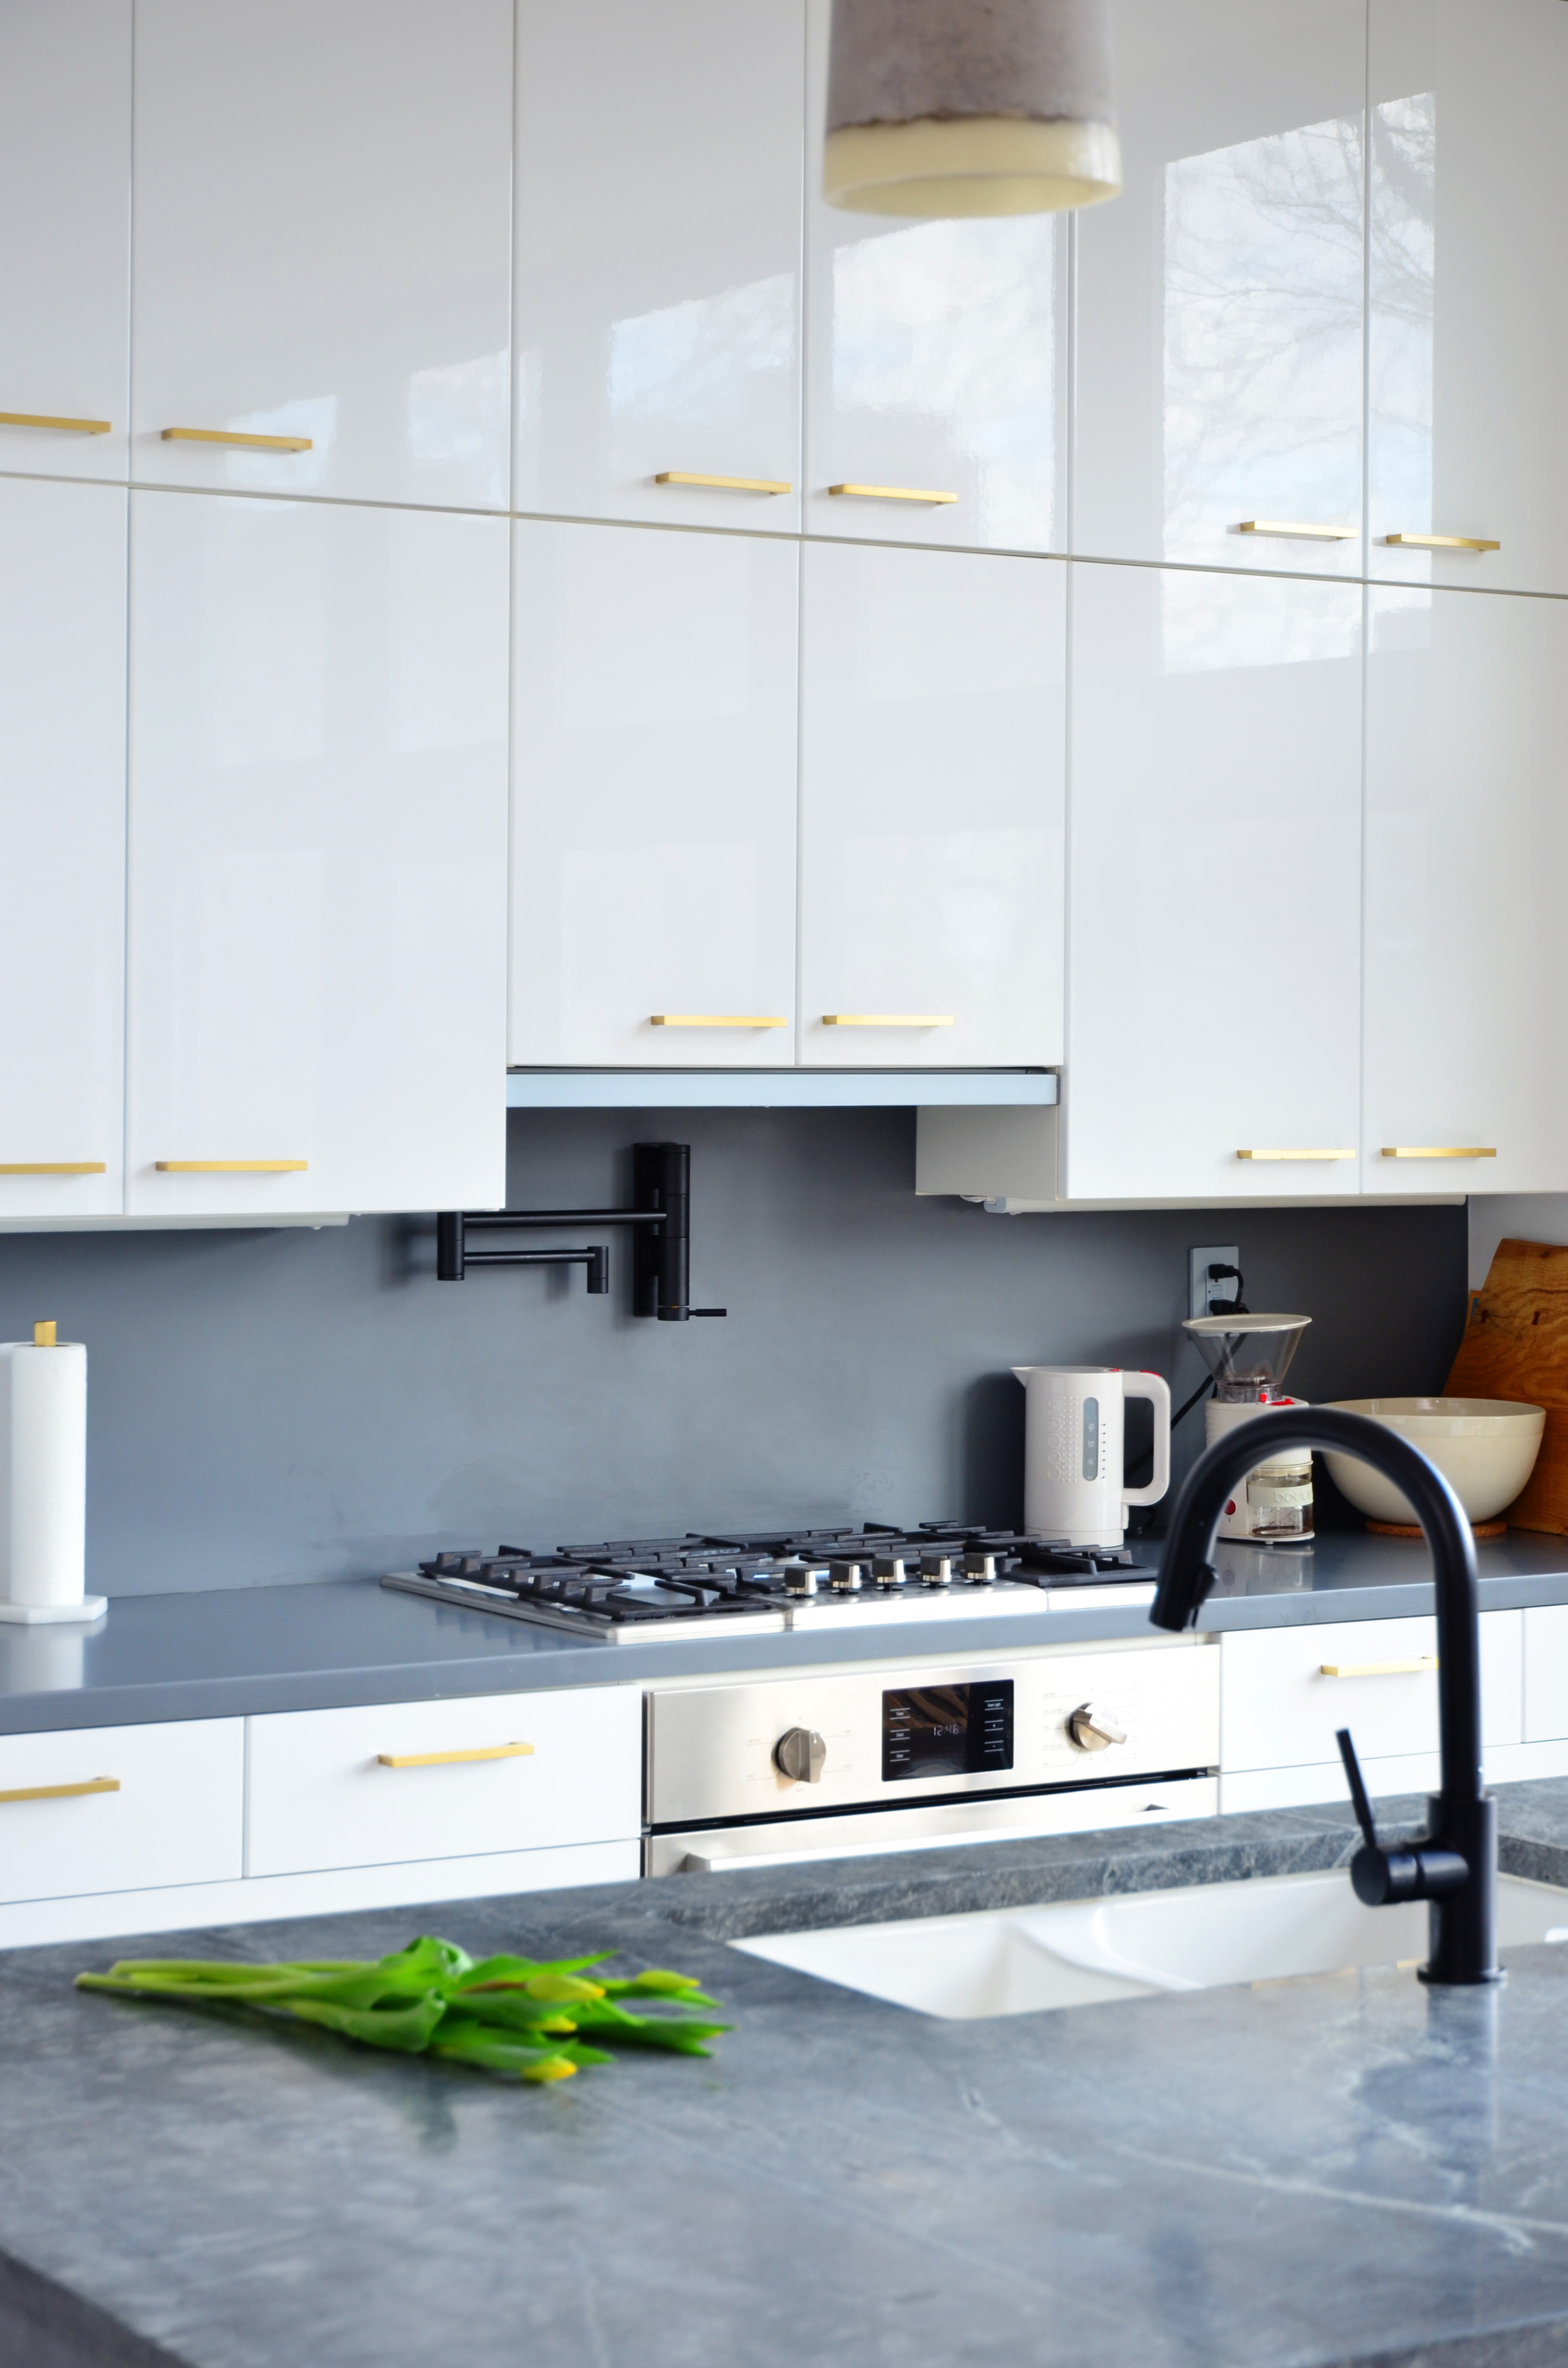 Ikea Kitchen Cabinets - Things to Know | Kitchn